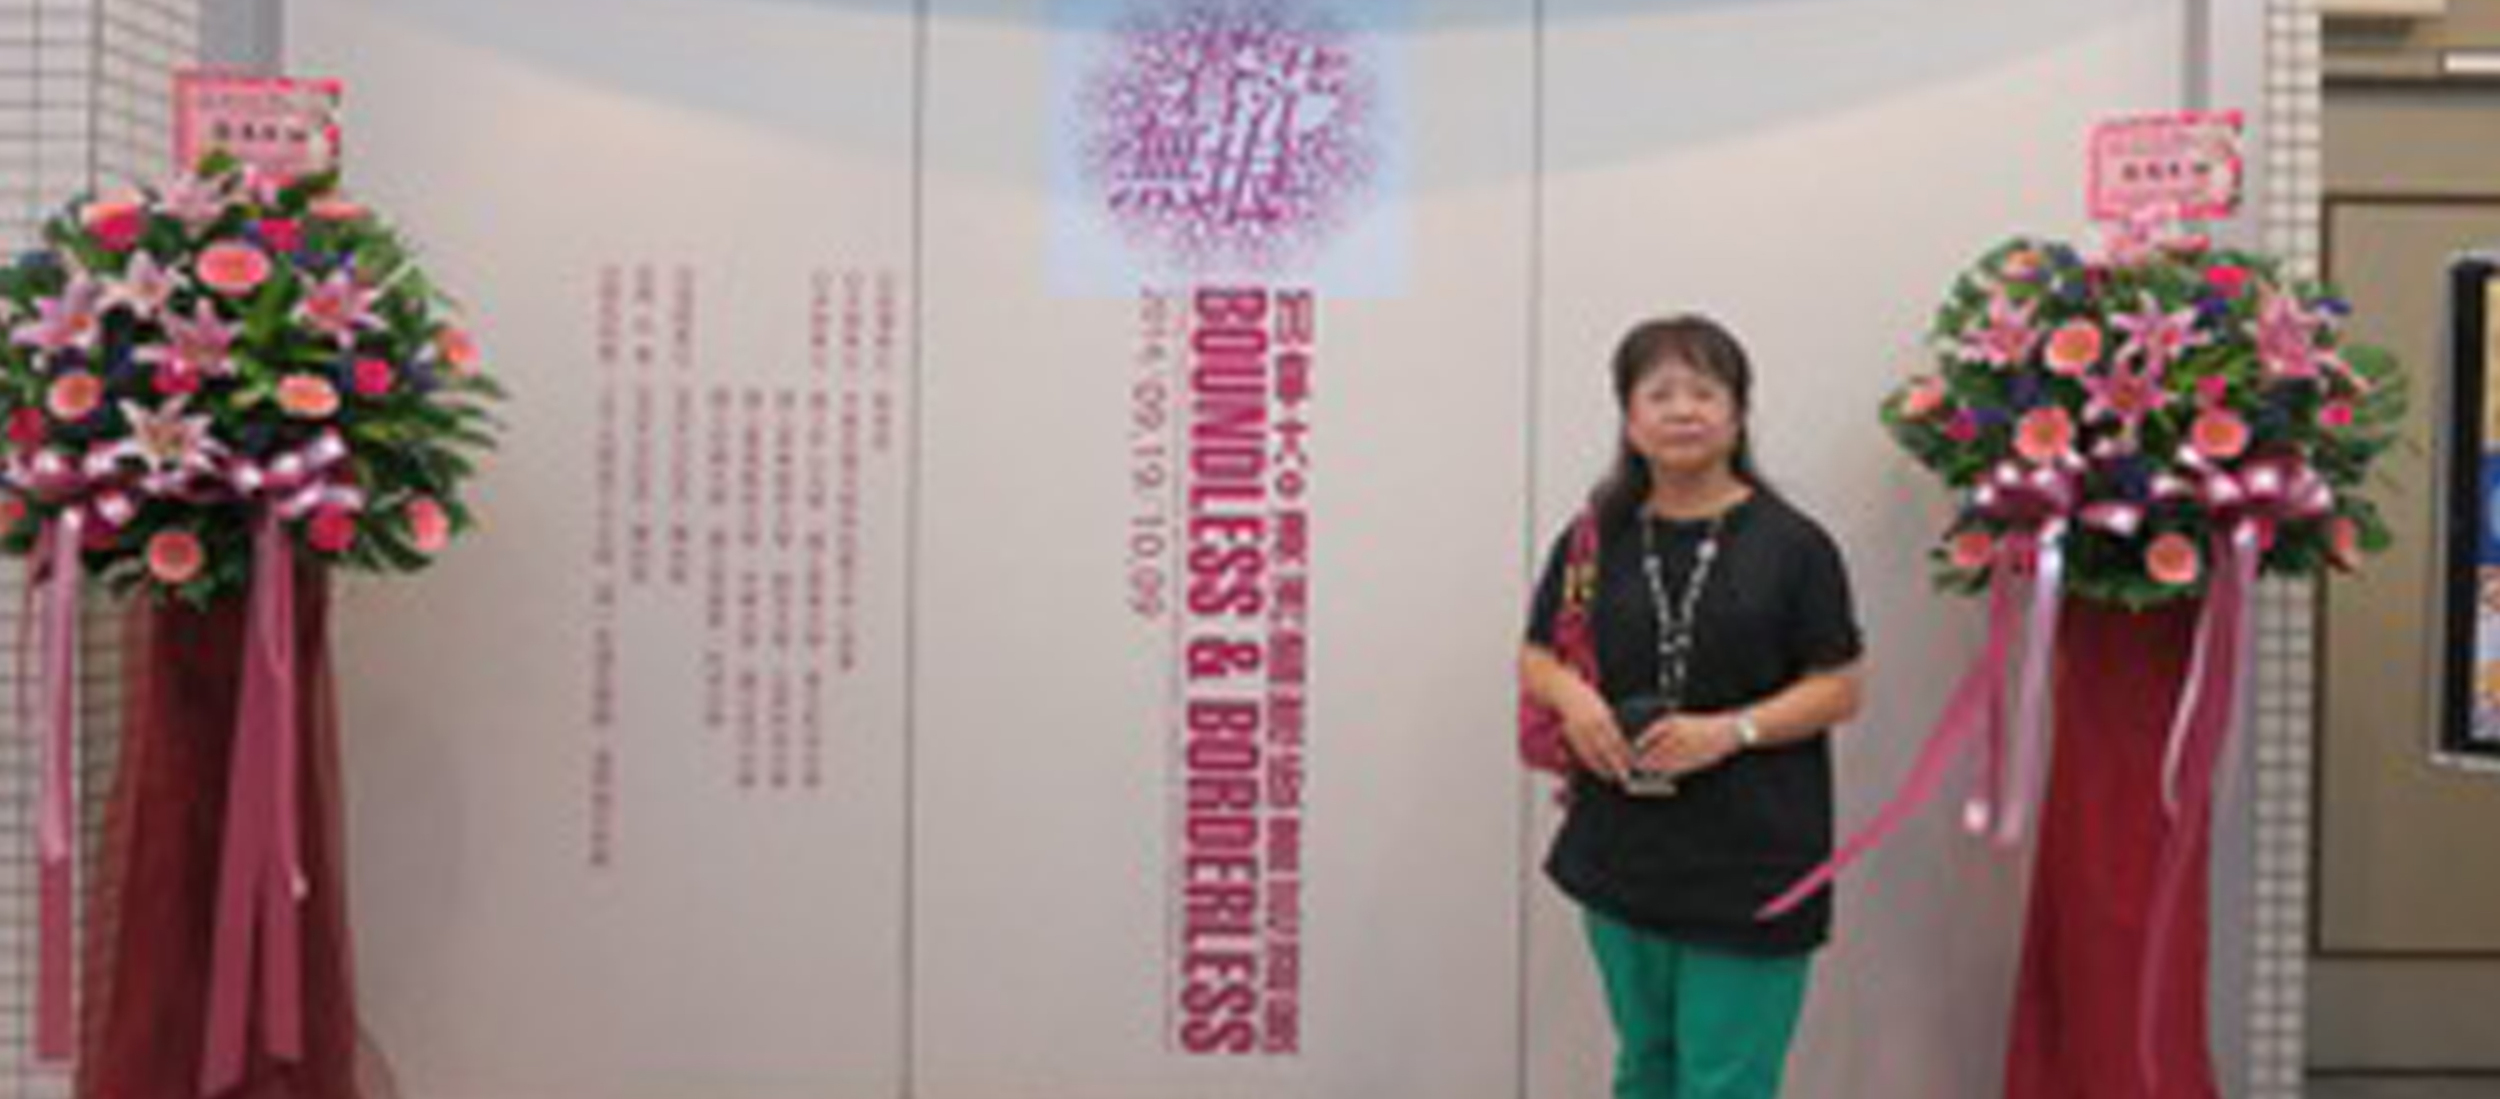 - The opening of 'Boundless and Borderless' print exhibition at 'Tainan National University', Taiwan (13/10/2014)